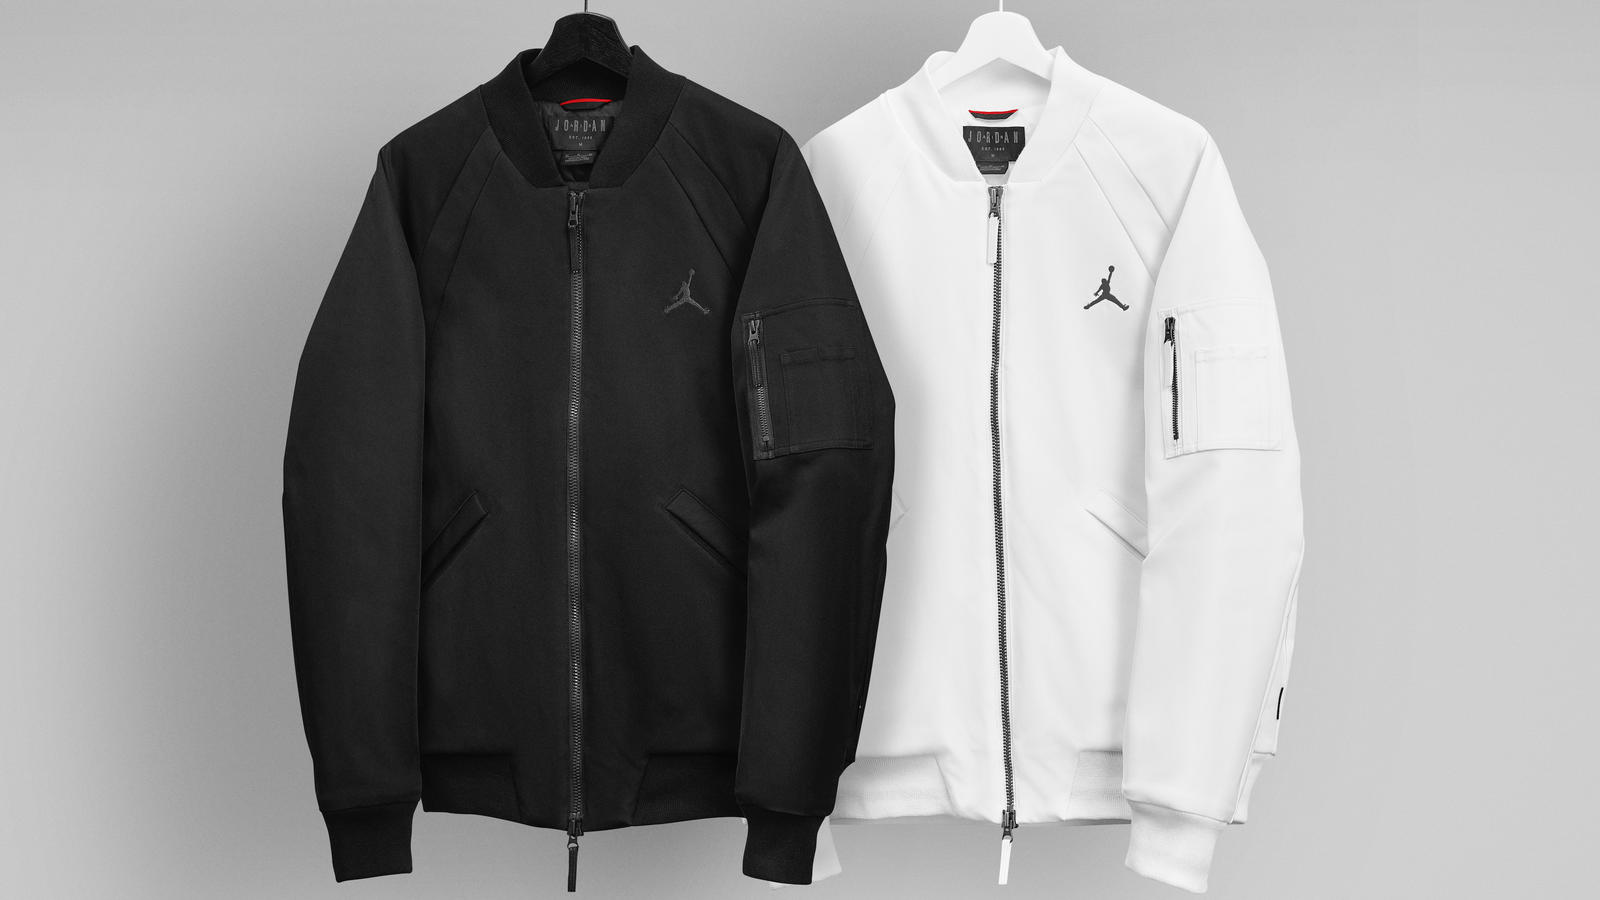 JORDAN BRAND UNVEILS FALL '17 APPAREL COLLECTION 11